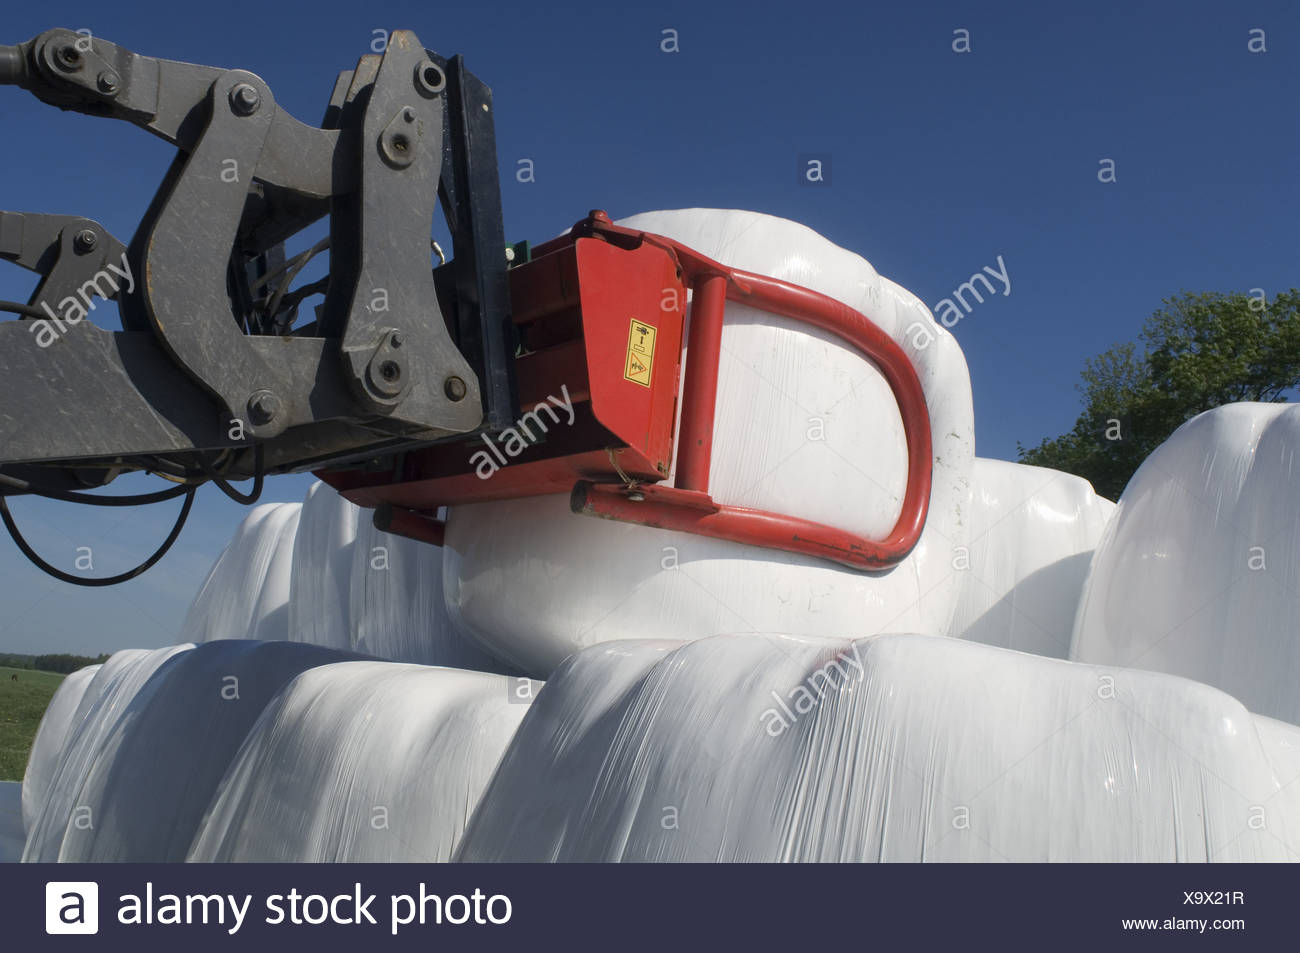 Plastic wrapped round silage bales, stacked onto pile with mechanical loader, Sweden - Stock Image